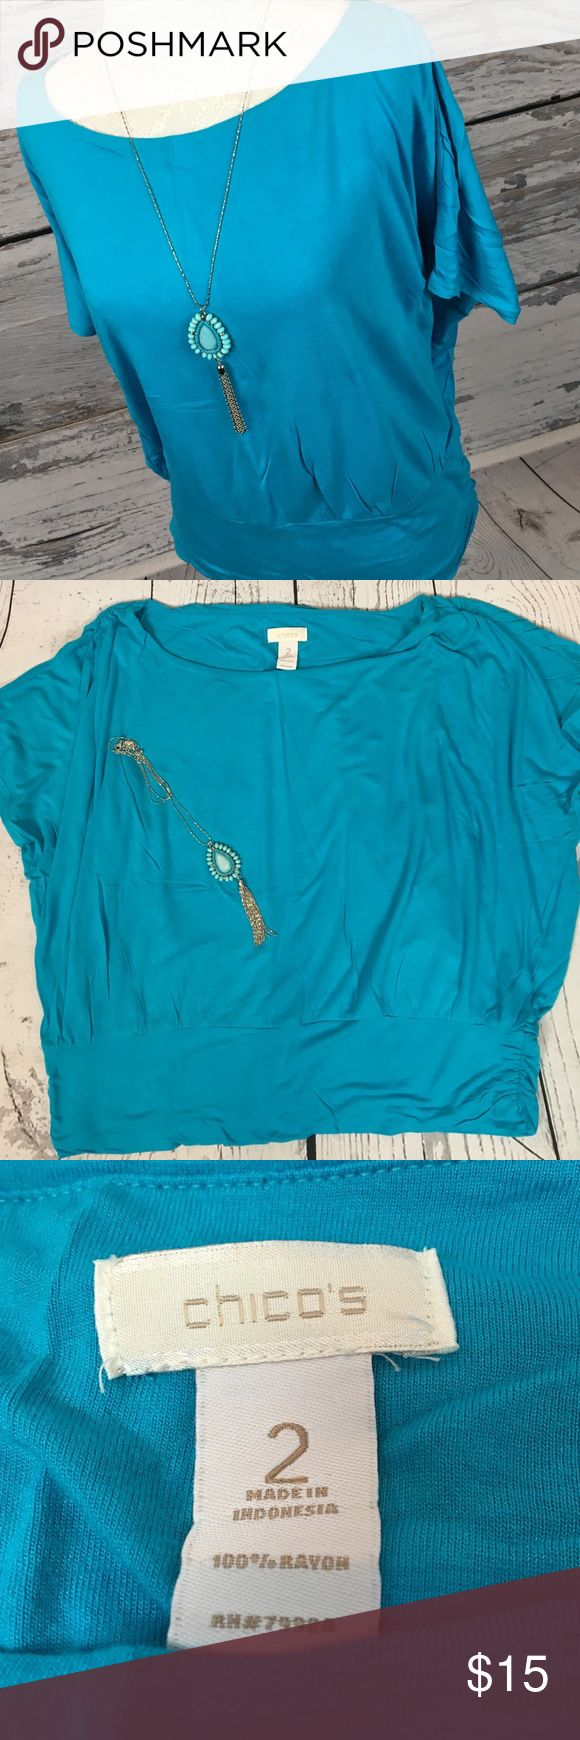 """🆕 Chico's Teal Blue Dolman Shirt Top Sz 2 12/14 Beautiful!!! Get pumped for that island vacation 🌴🌴 I can see the water being the color of this lovely top!! Banded at waist with gathered sides & shoulders. Dolman bat wing style. Beautiful condition from a smoke free home!! Chico's Size 2 or women's 12/14.  Measurements (flat): Armpit to armpit: 29"""" Armpit to bottom: 13"""" Shoulder to bottom: 22.5"""" Across bottom: 17.5"""" unstretched Chico's Tops"""